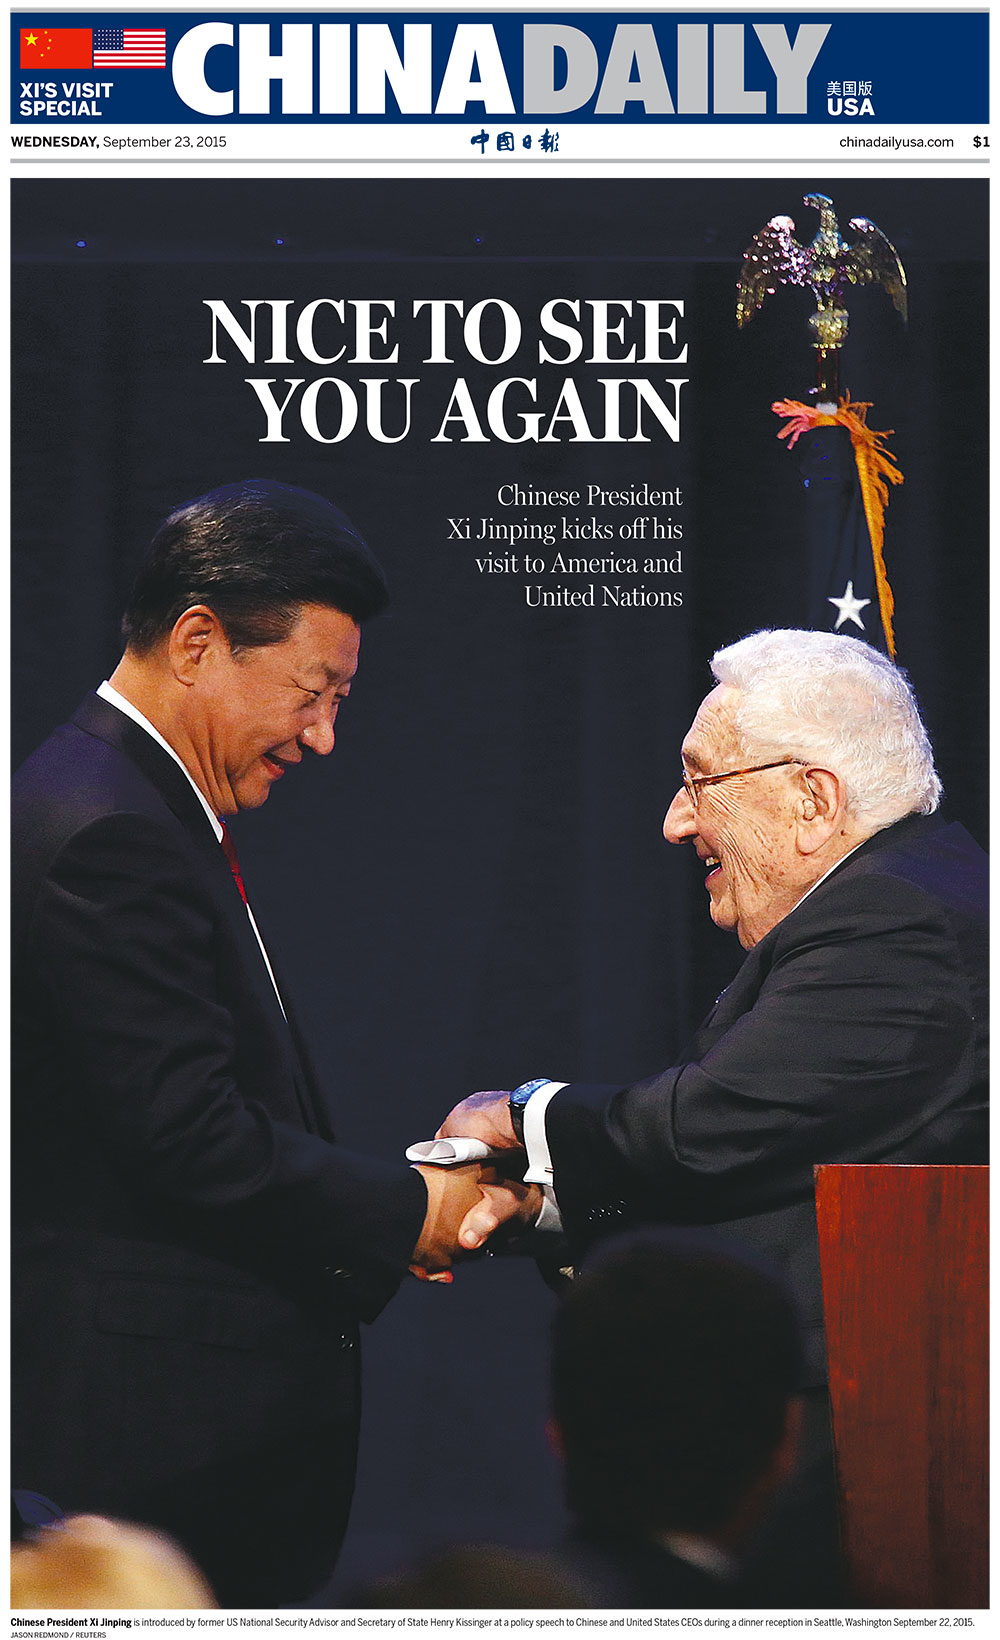 'China Daily,' U.S. edition, September 23, 2015.